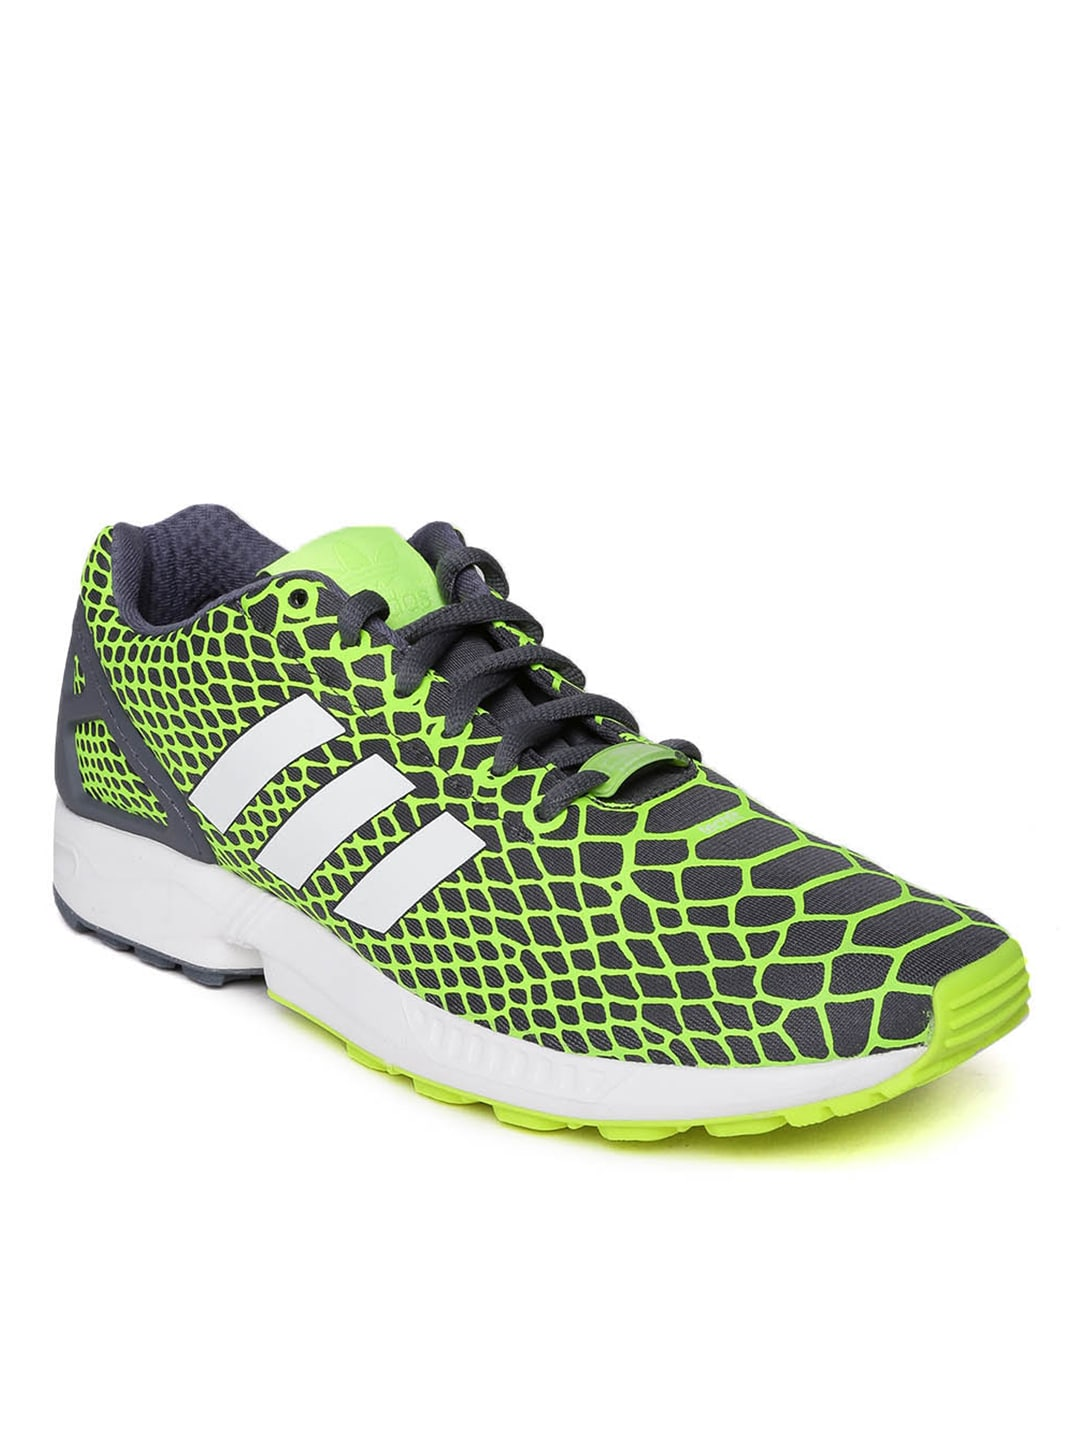 bb7bf9933 Adidas originals b24934 Adidas Men Grey And Neon Green Printed Zx Flux  Techfit Casual Shoes- Price in India